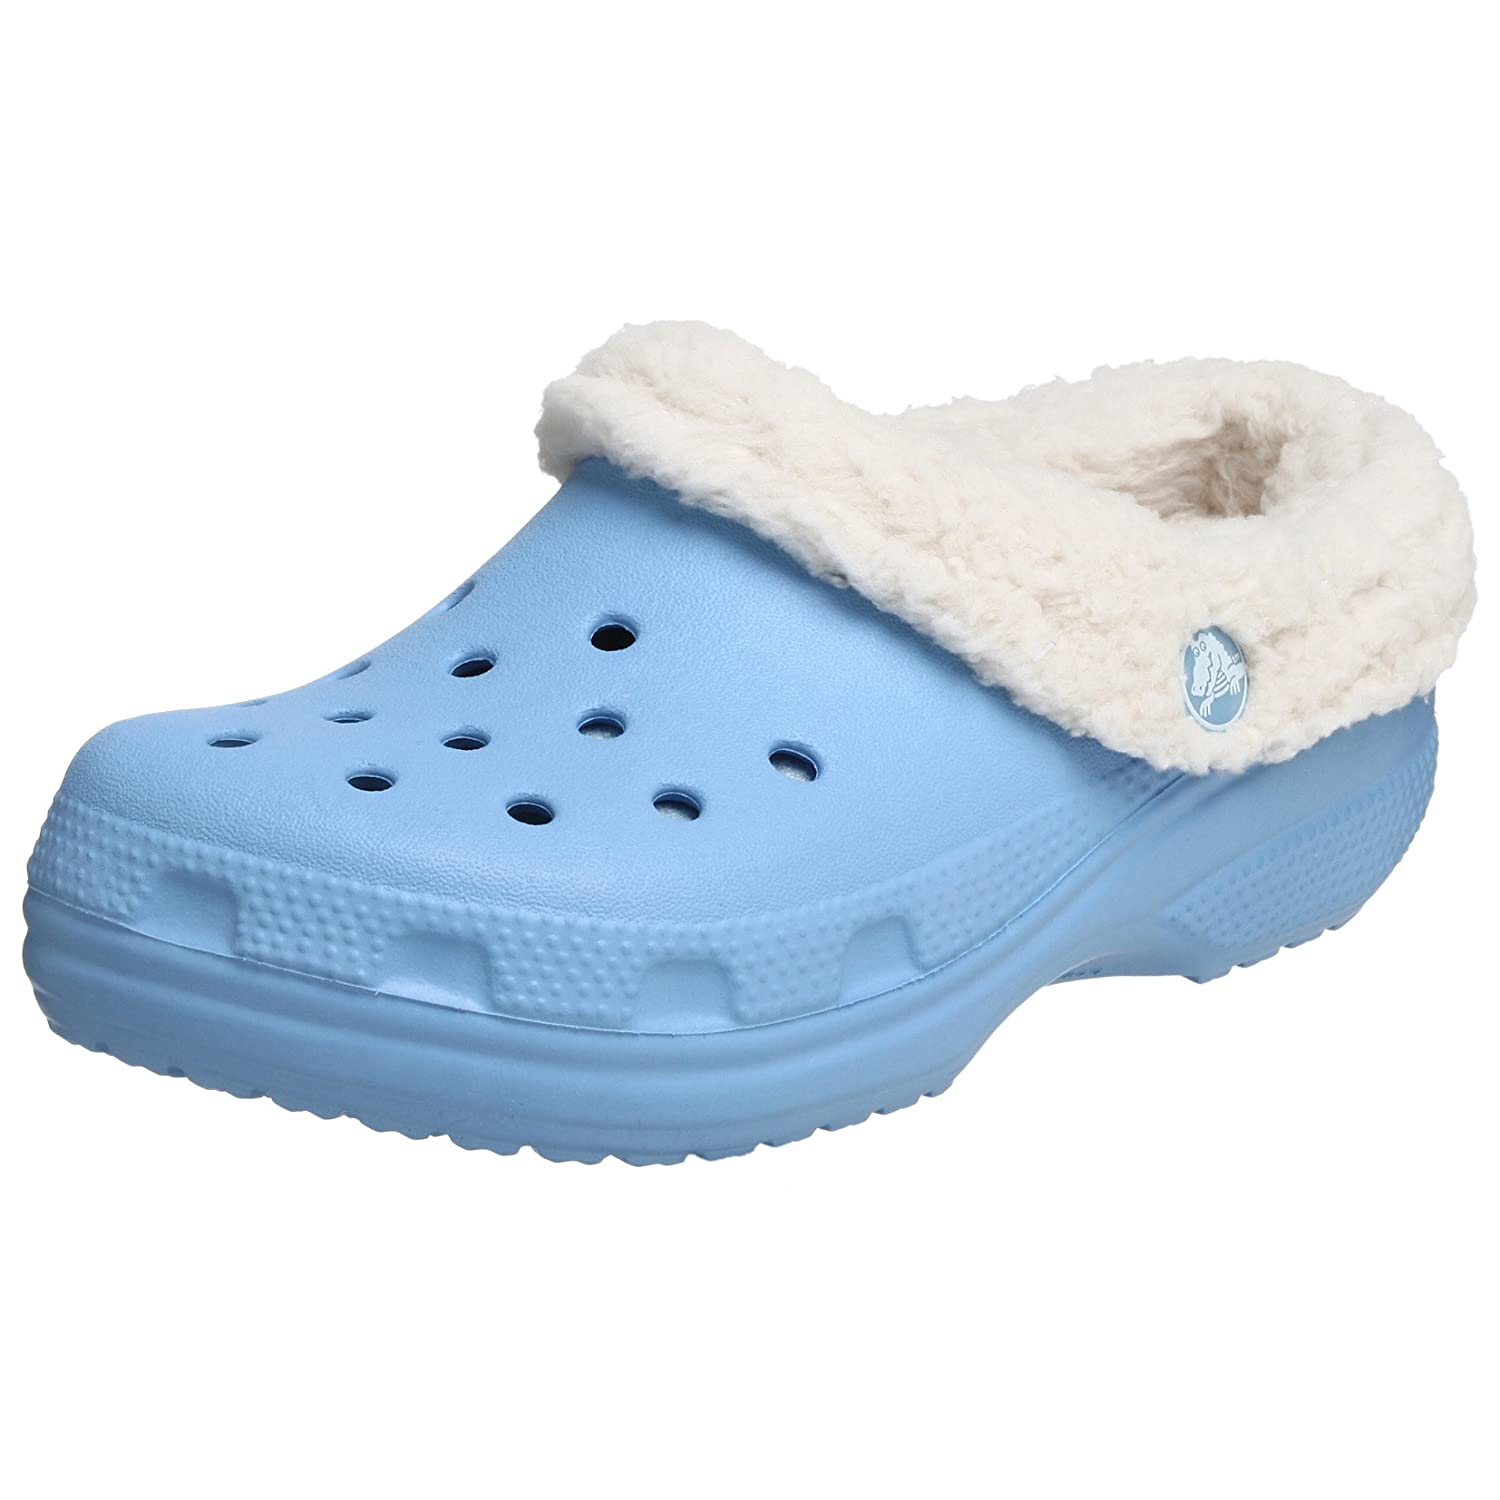 Crocs Kids' Mammoth Lined Clog crocs 10048